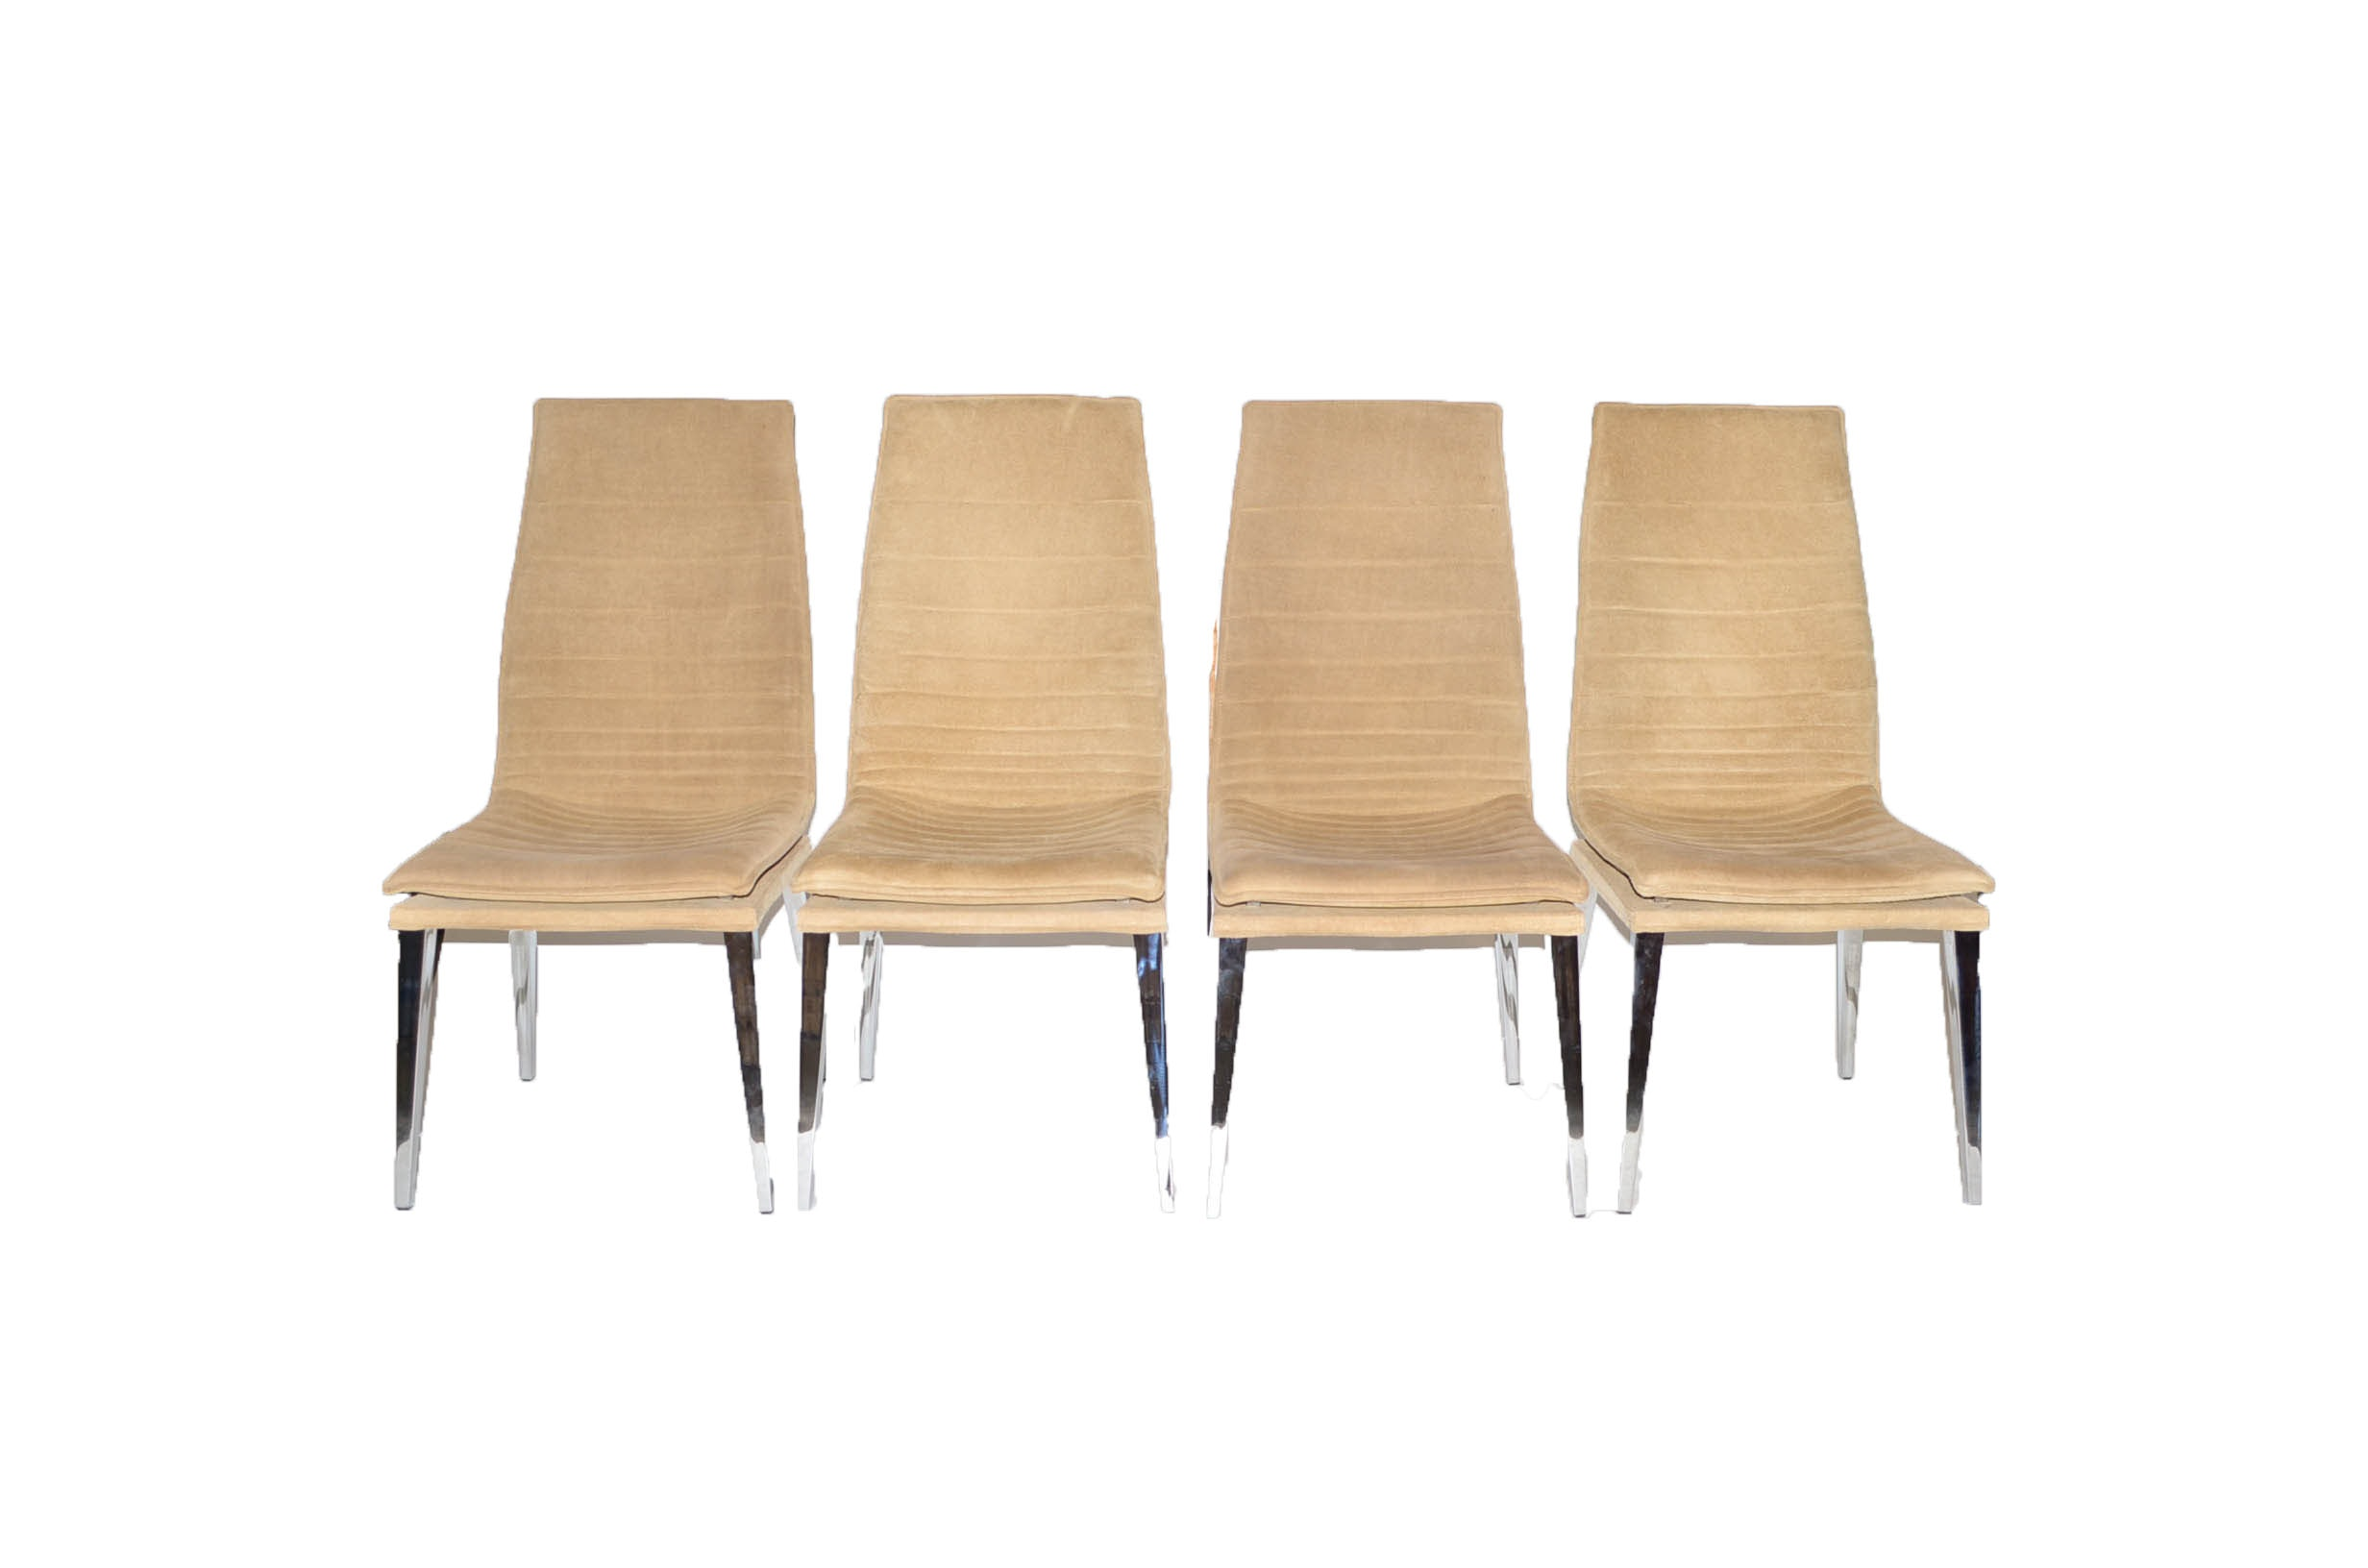 Four Modern Suede Dining Chairs by Smania